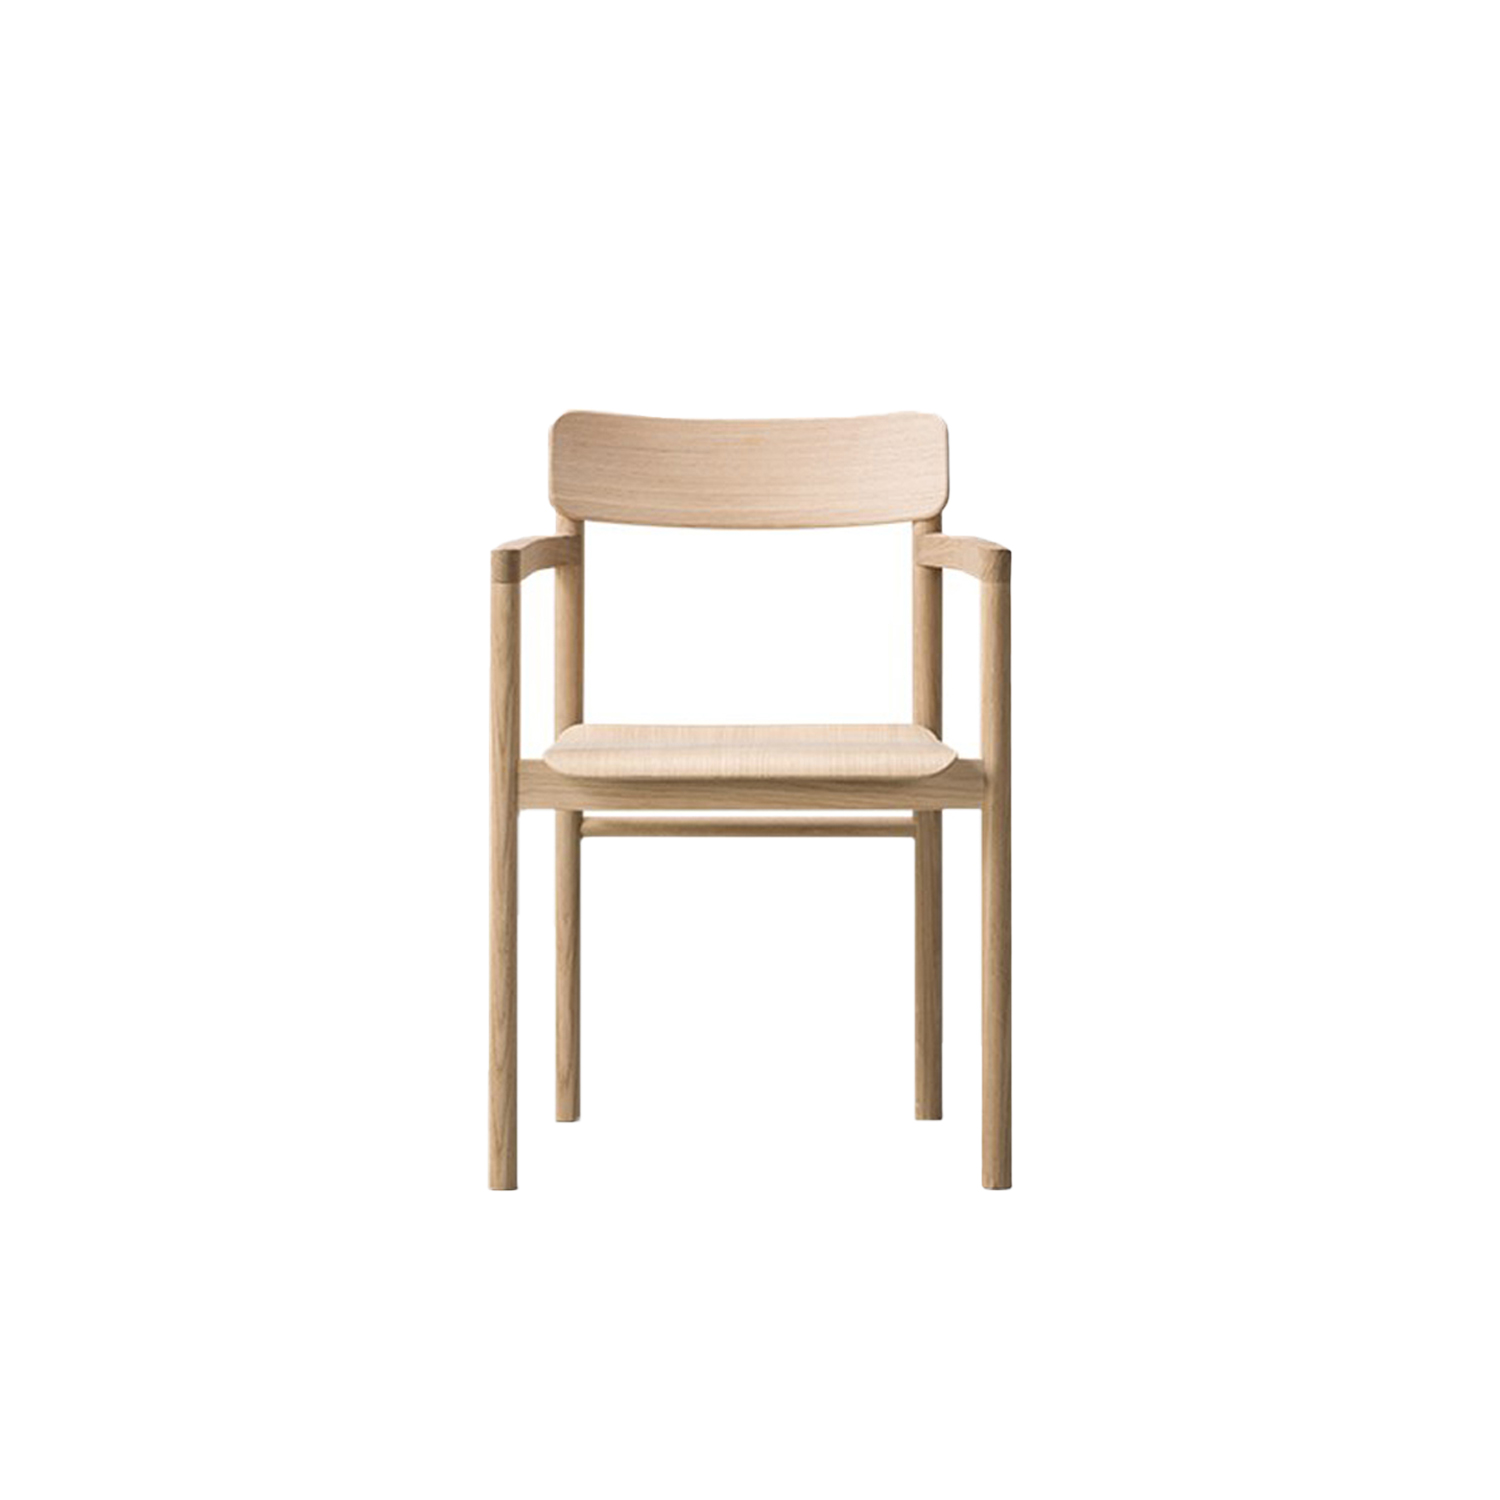 Post Armchair - With its upright stance and solid wood frame, the Post Chair embodies the principles of simplicity that drive designer Cecilie Manz. Cleverly constructed with a minimal use of space for the arms yet a comfortably wide seat, the Post Chair looks clean and crisp. A welcome addition to any restaurant, hotel, private home or corporate setting, it features a plywood seat and back to add subtlety, available in an upholstered seat version in leather or fabric. | Matter of Stuff